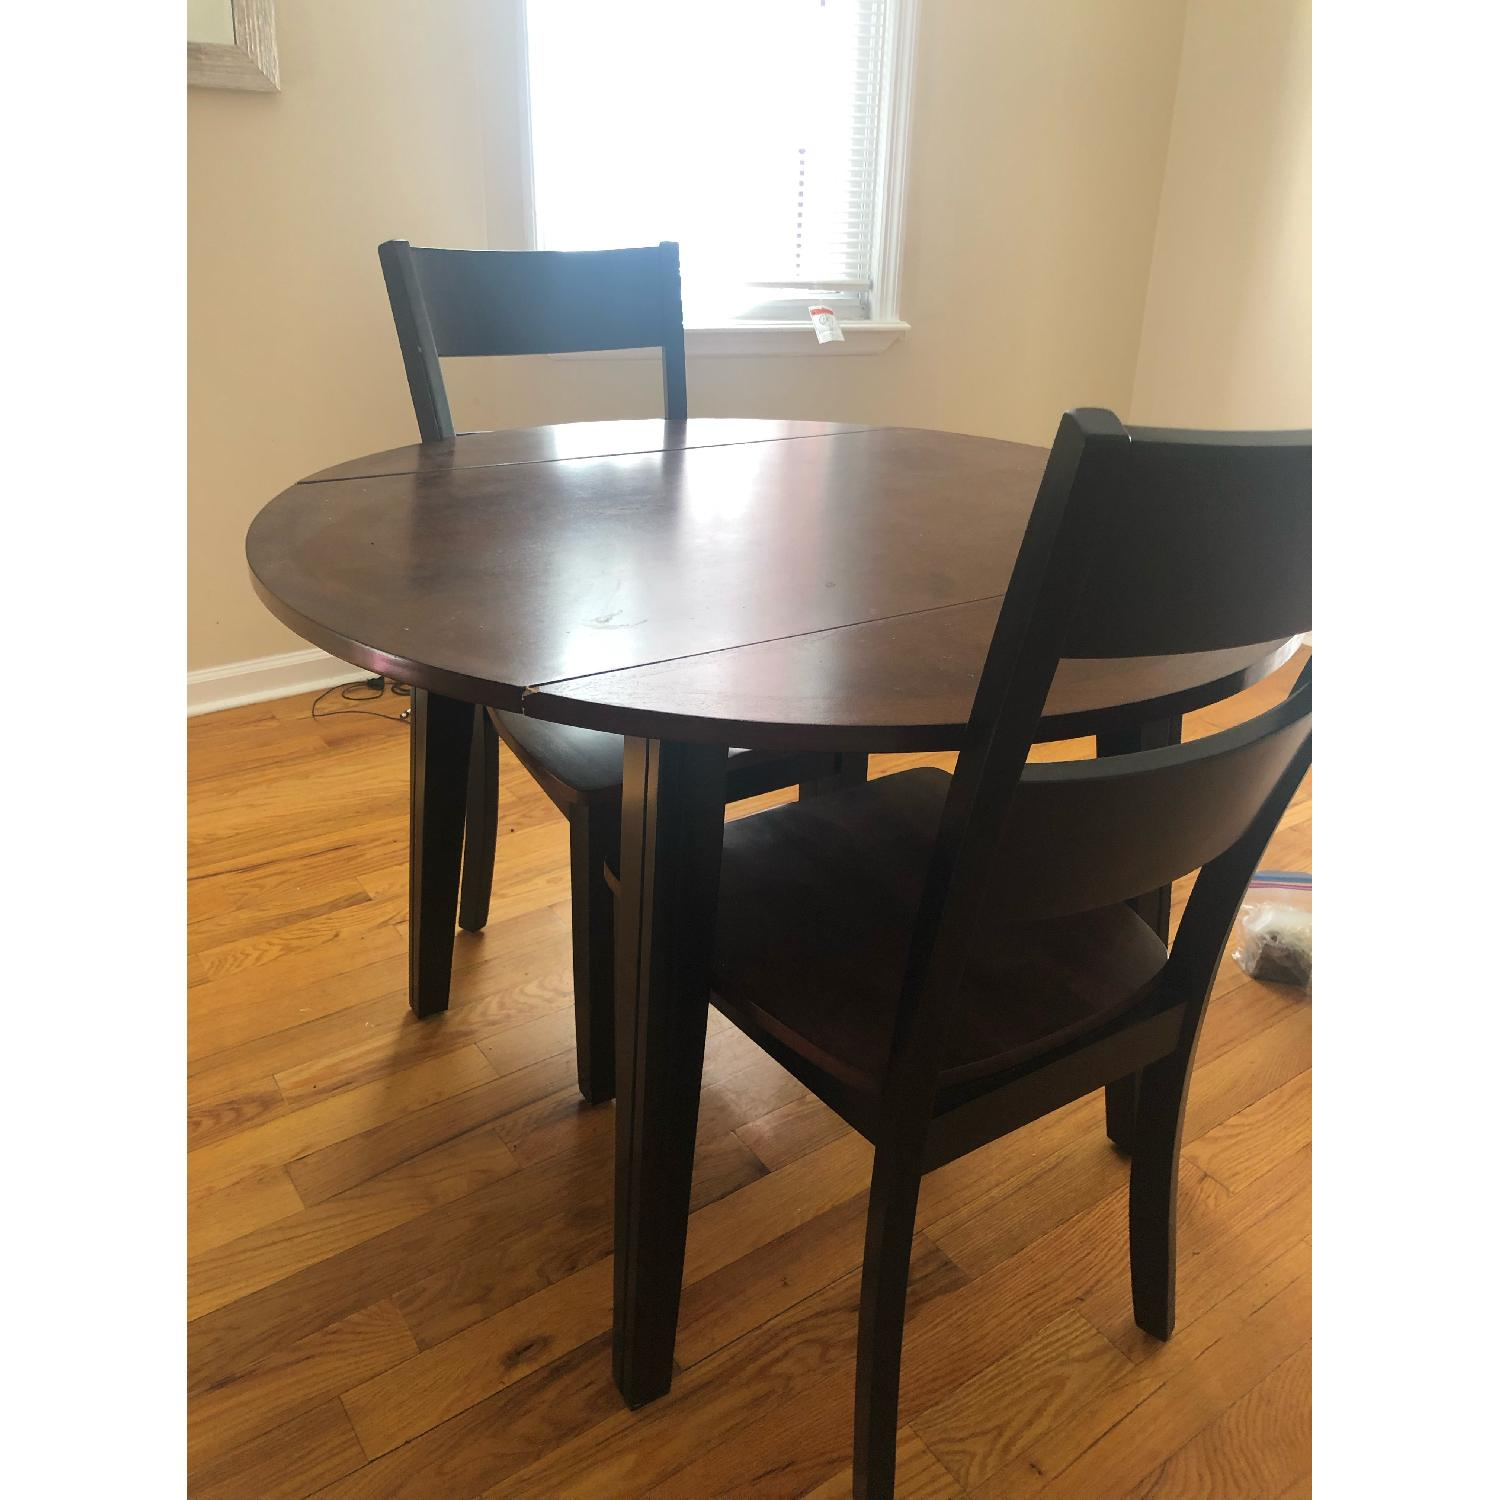 Bob's Blake 3 Piece Drop Leaf Dining Set-2